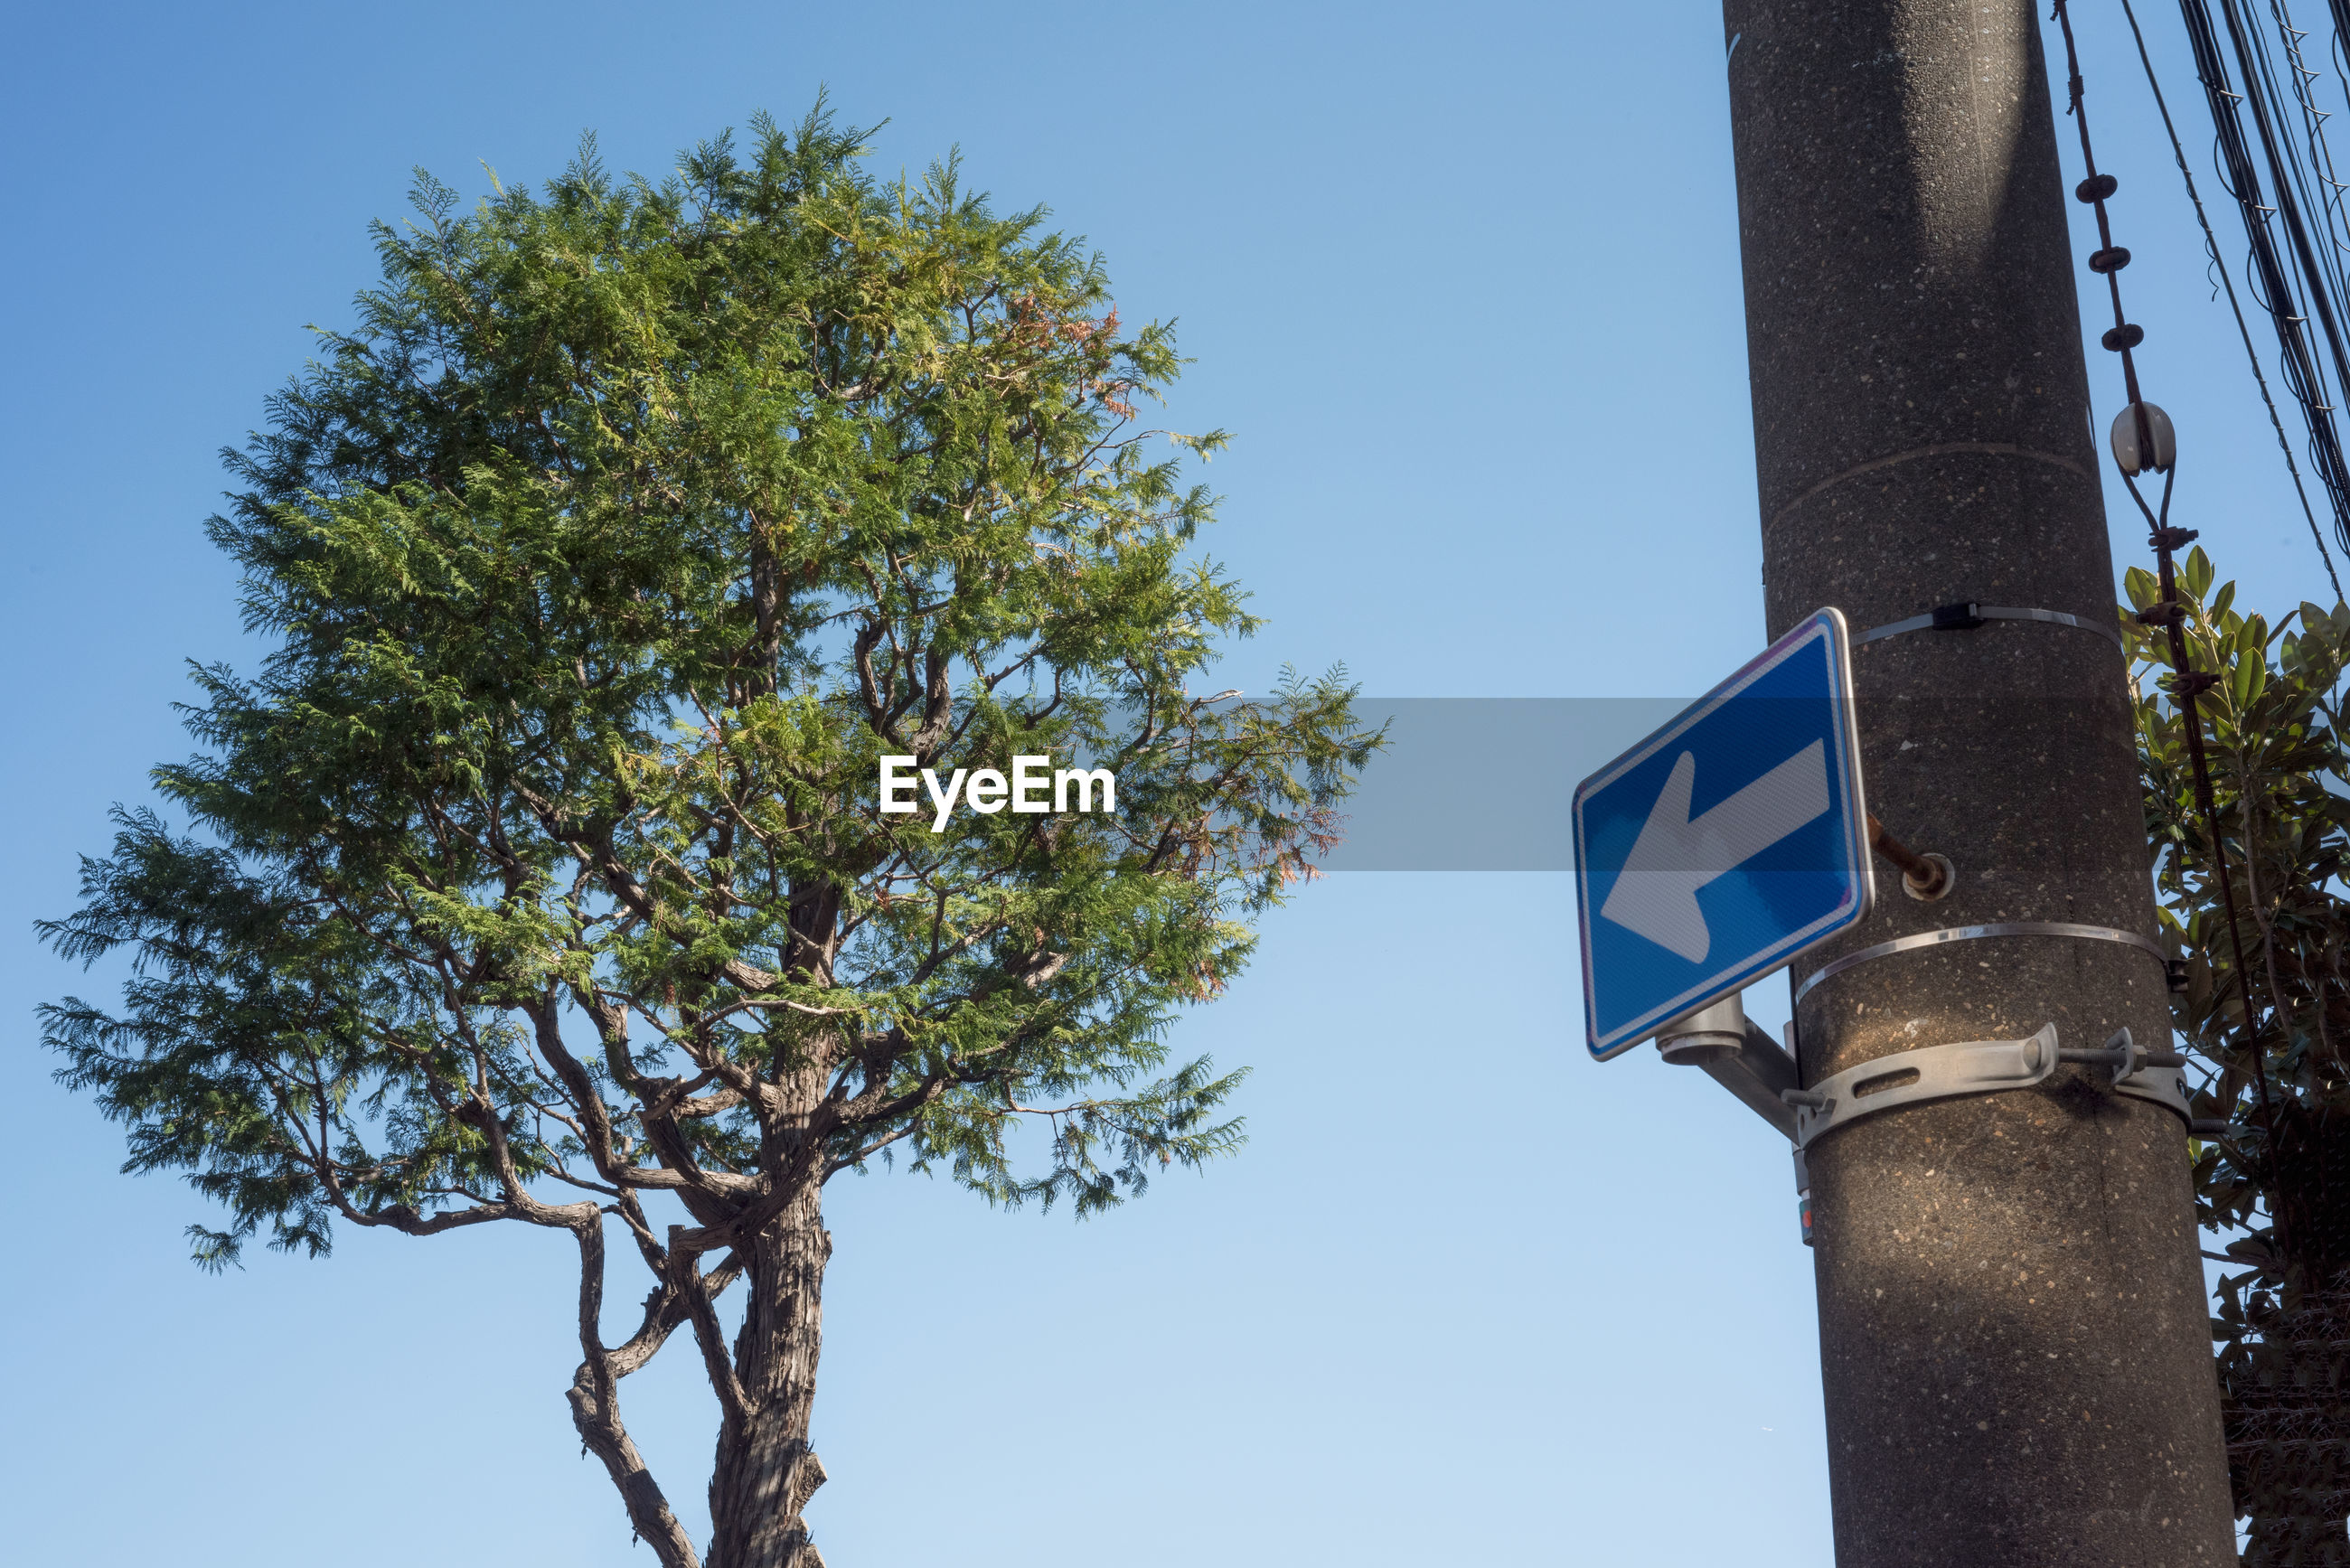 Low angle view of road sign against sky and a tree